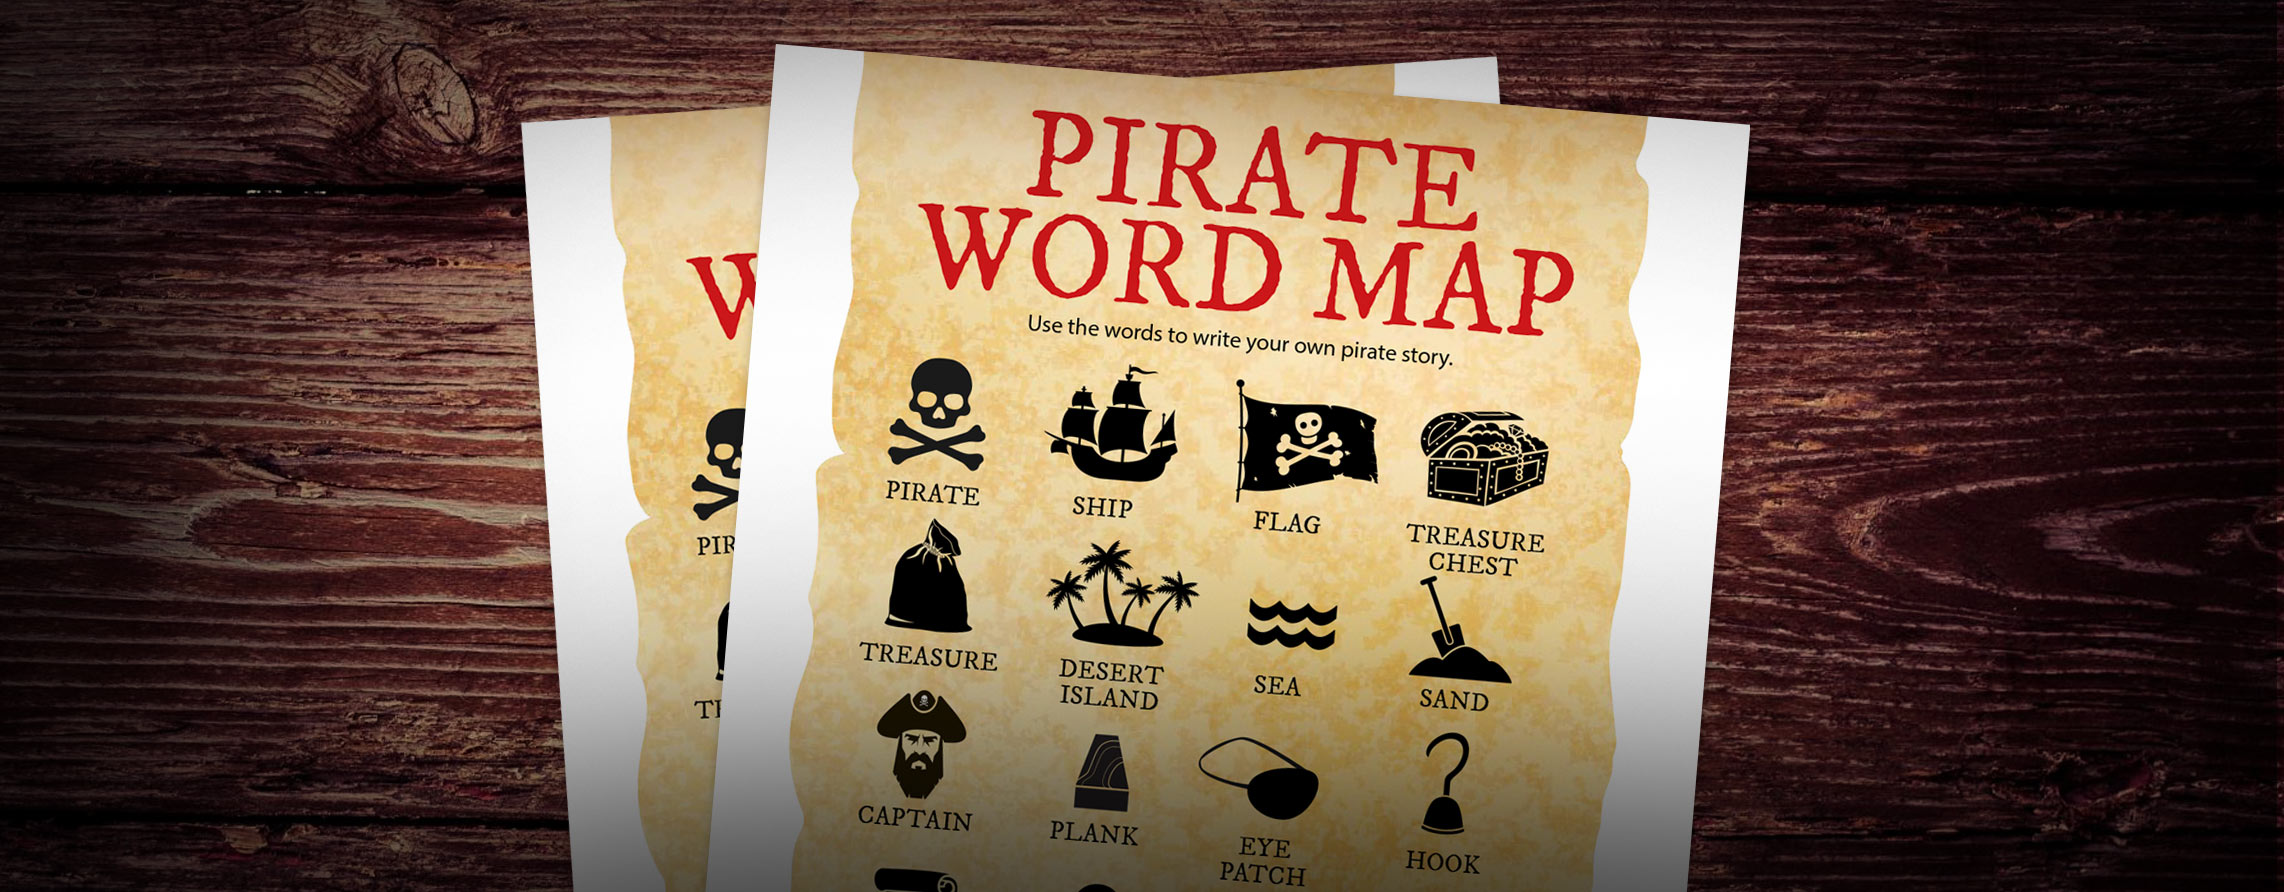 Pirate Word Map